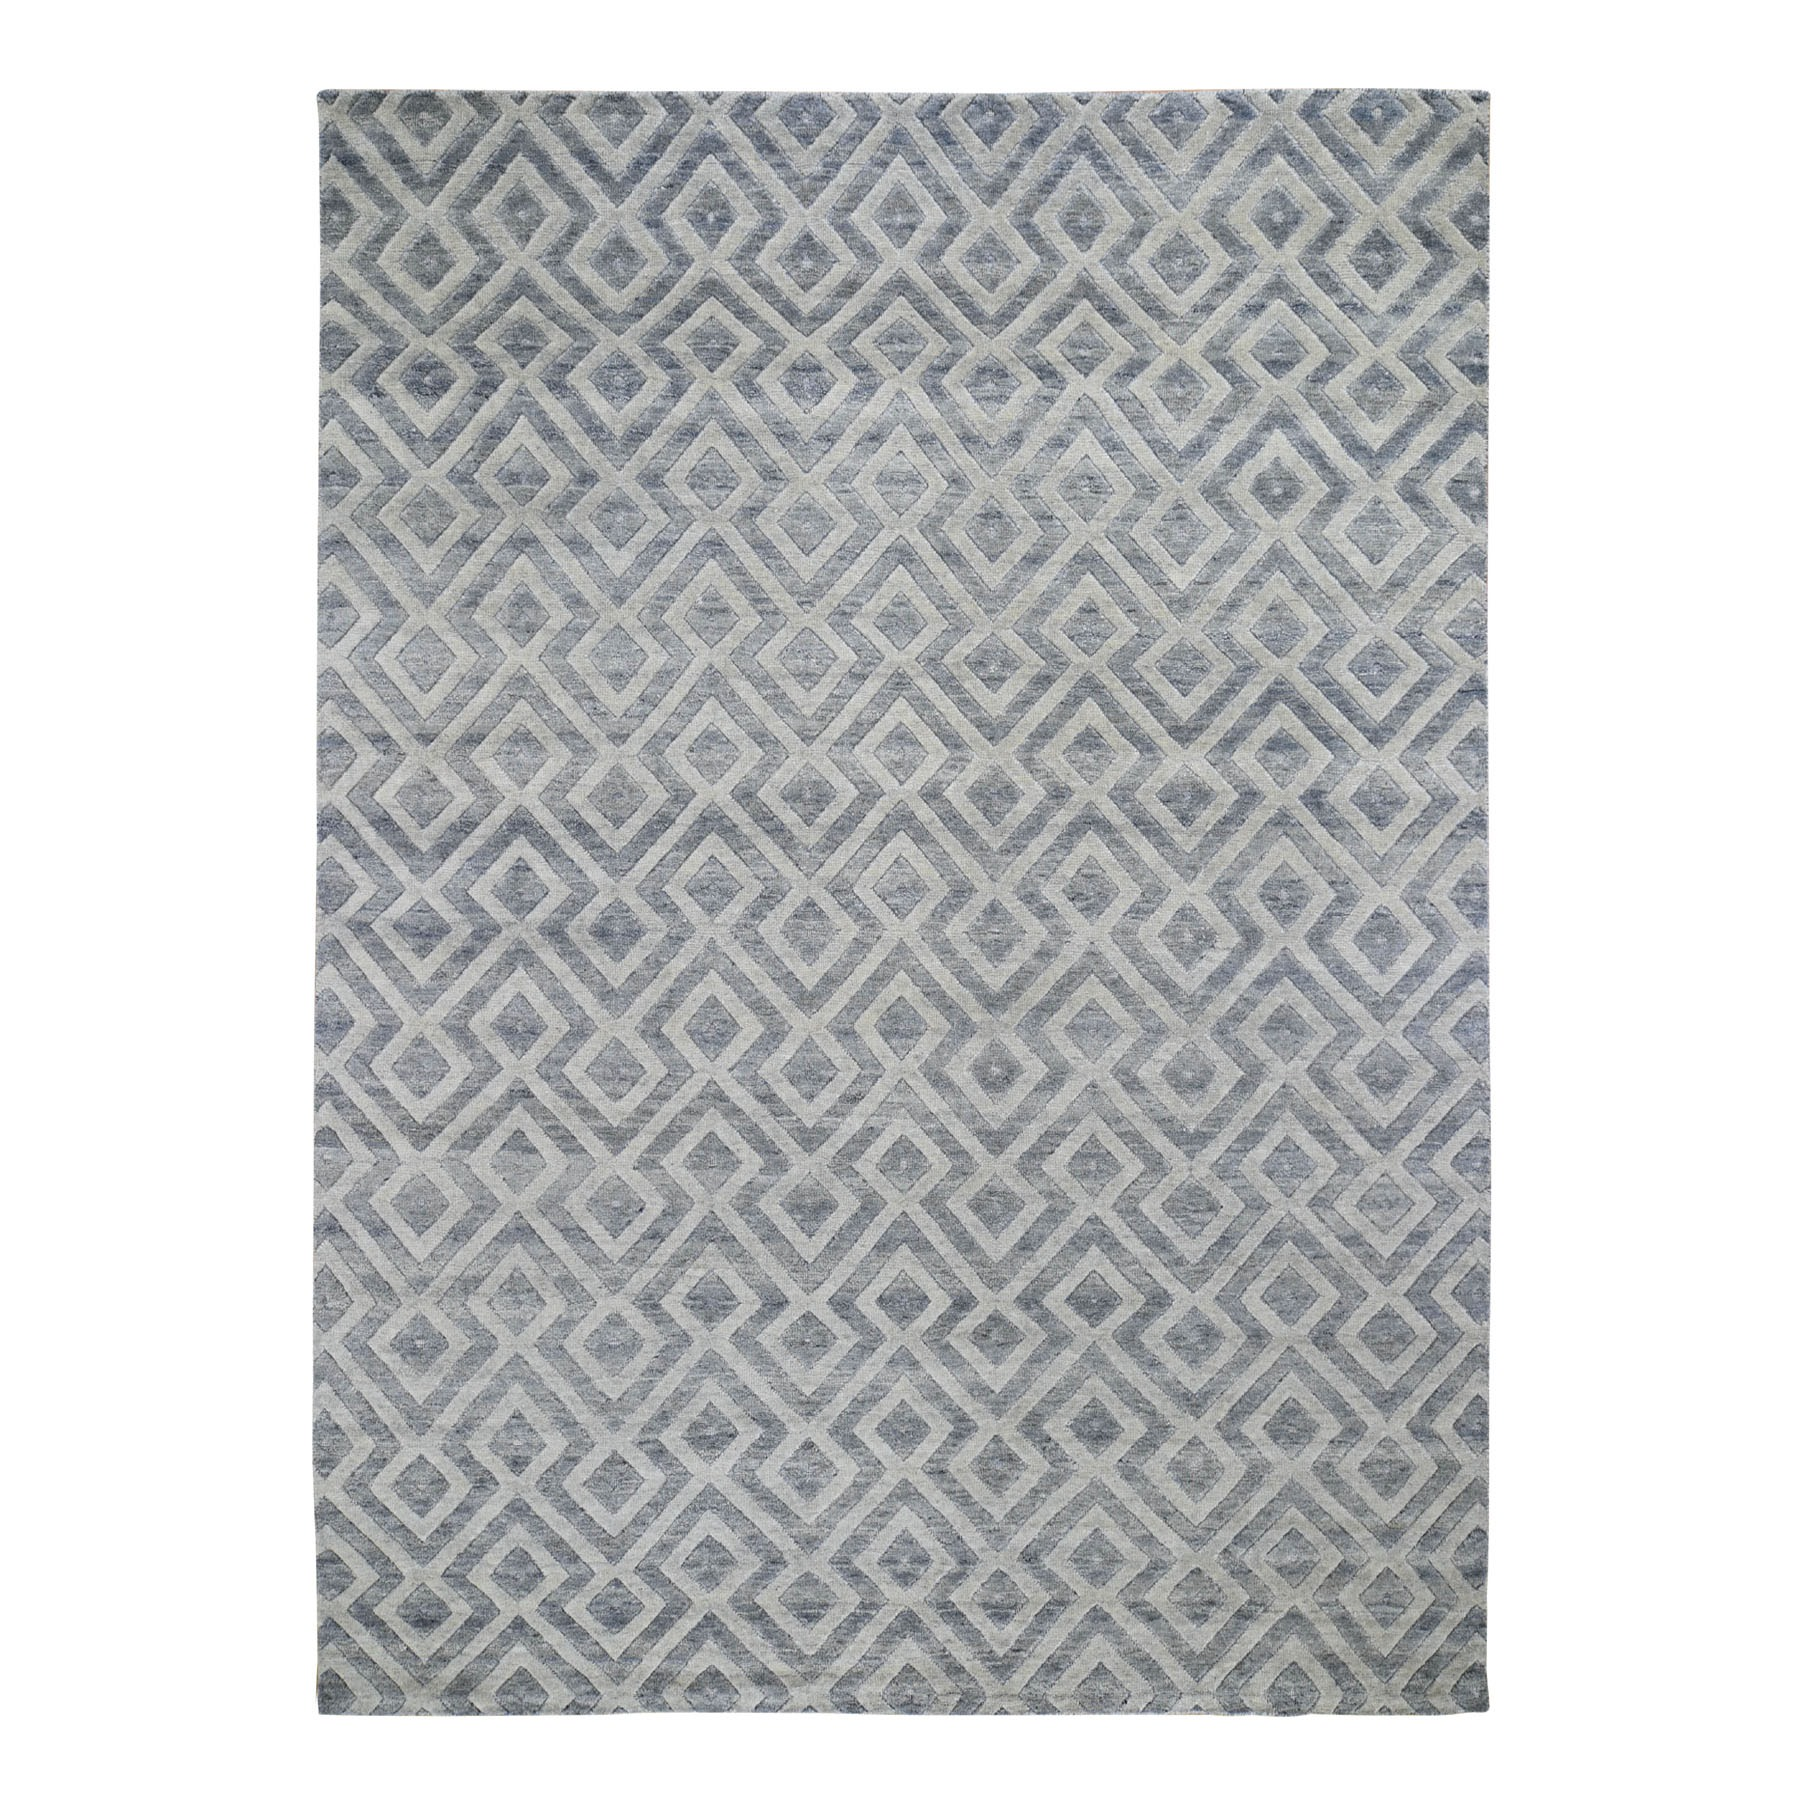 "8'10""x11'10"" Blue Pure Wool Geometric Design Hand Knotted Modern Thick And Plush Oriental Rug 48170"